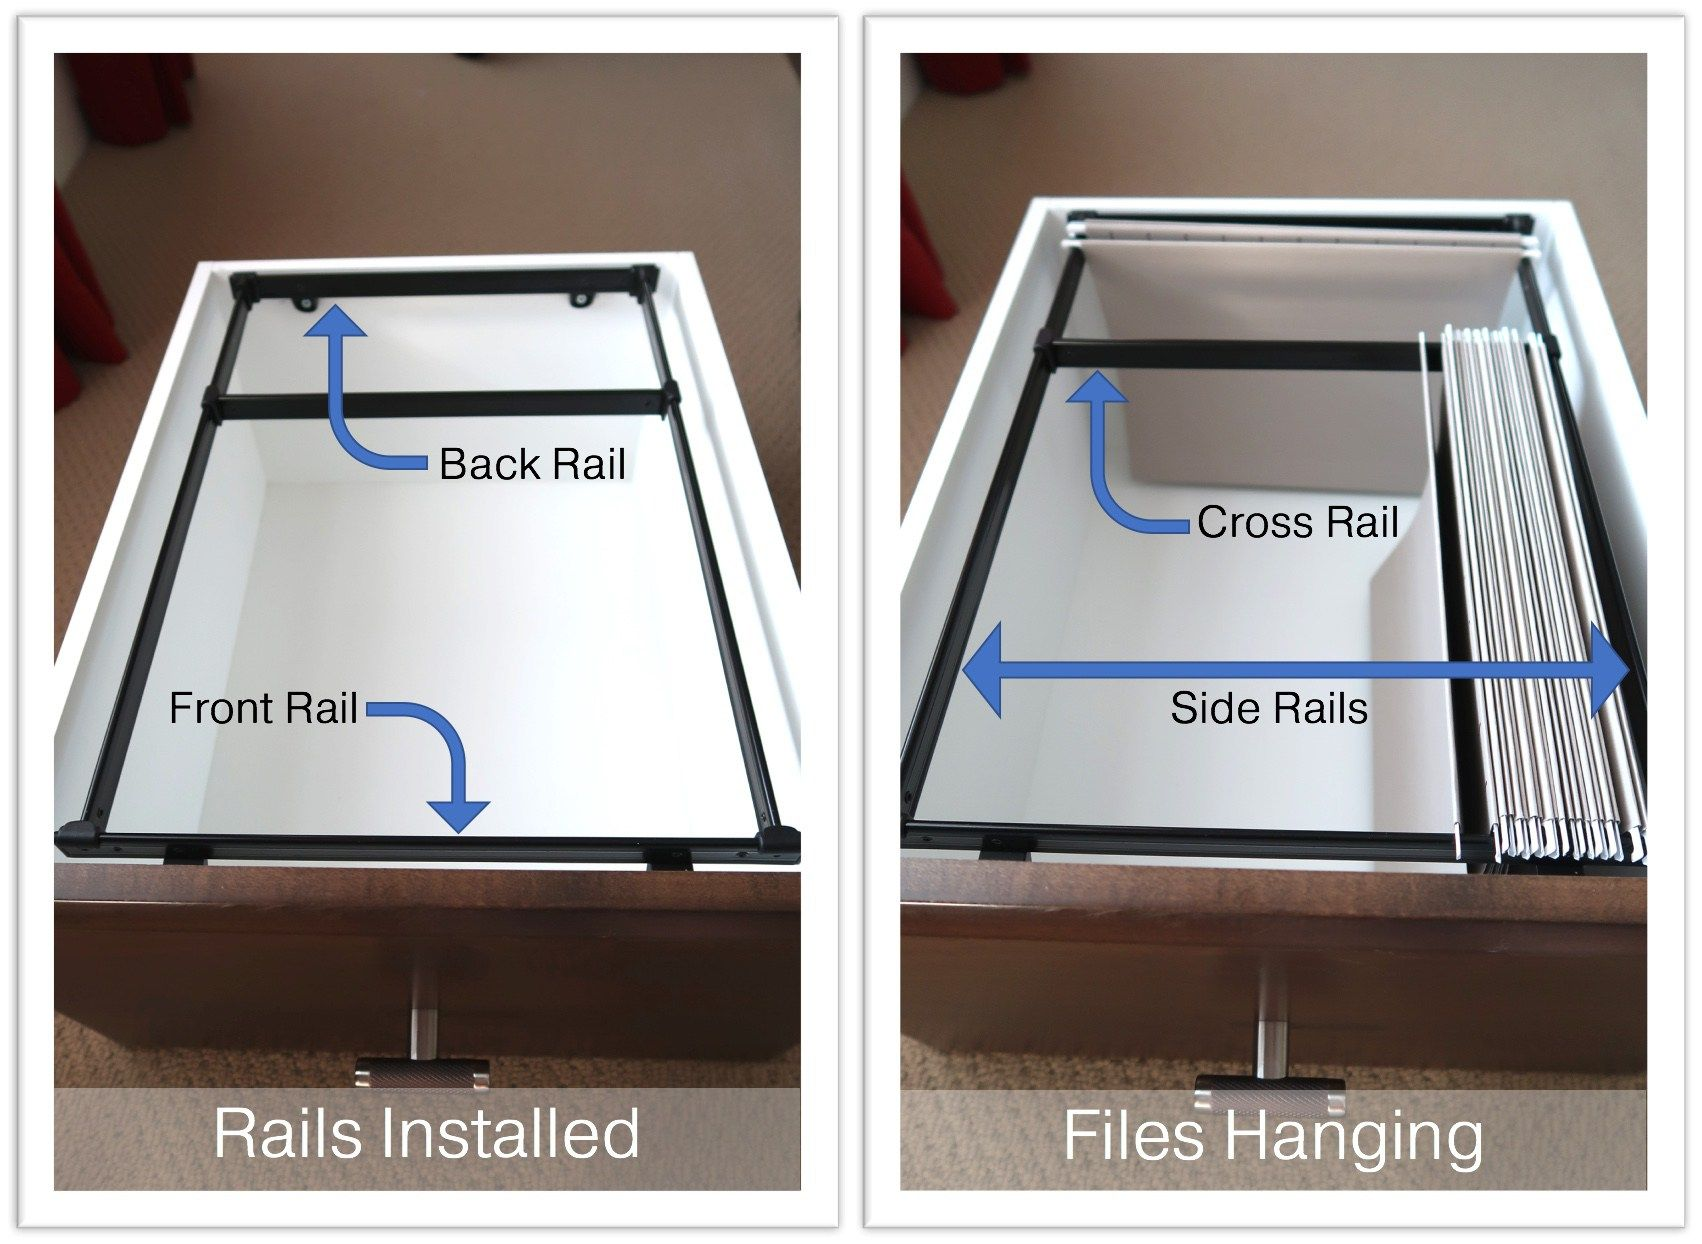 file cabinet without hanging rails